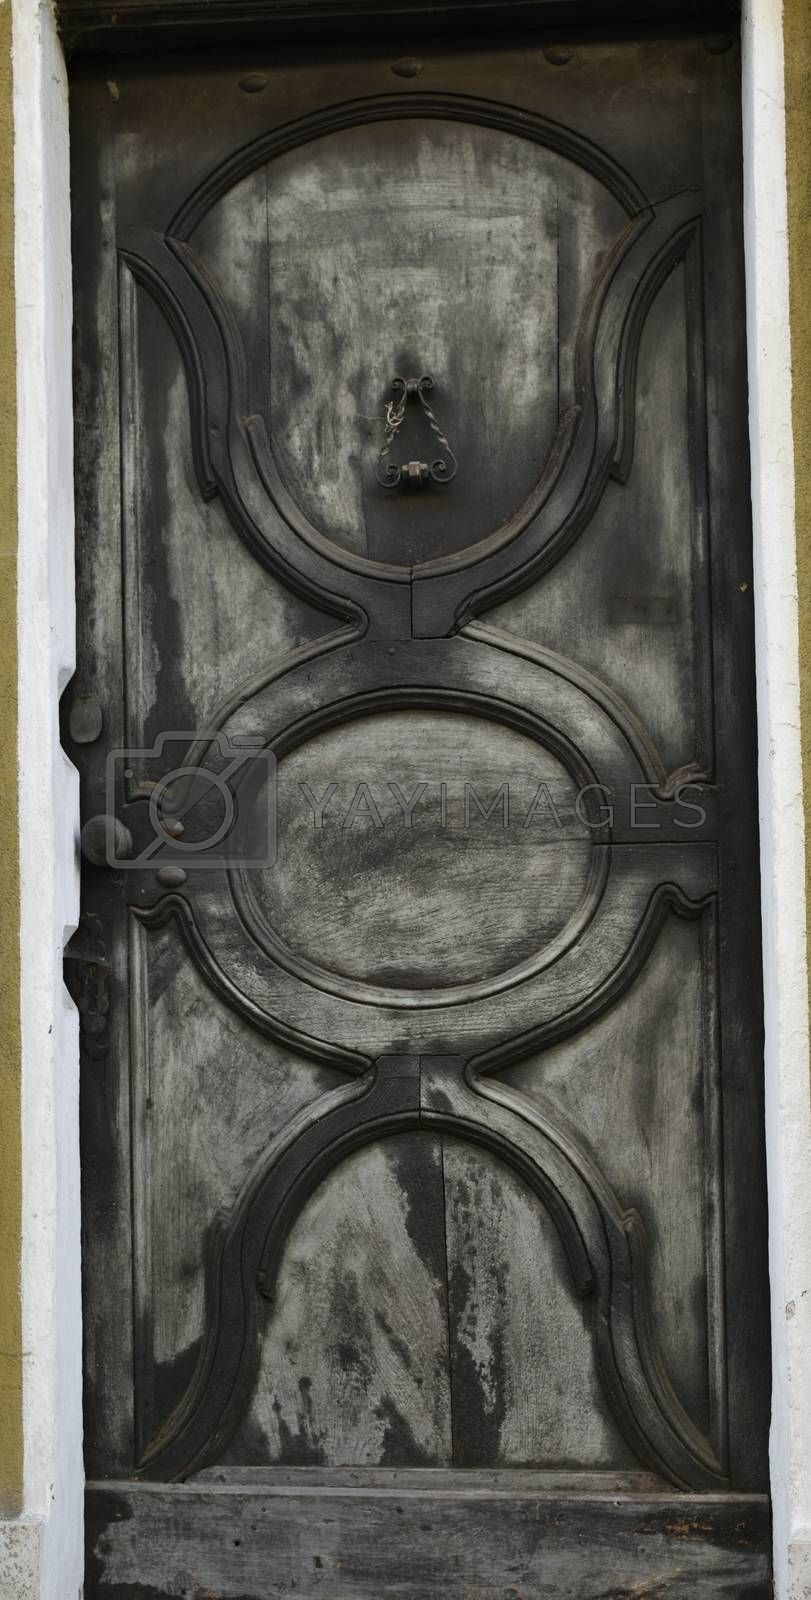 A view of an ancient door color silver, typical in old houses in Piedmont.